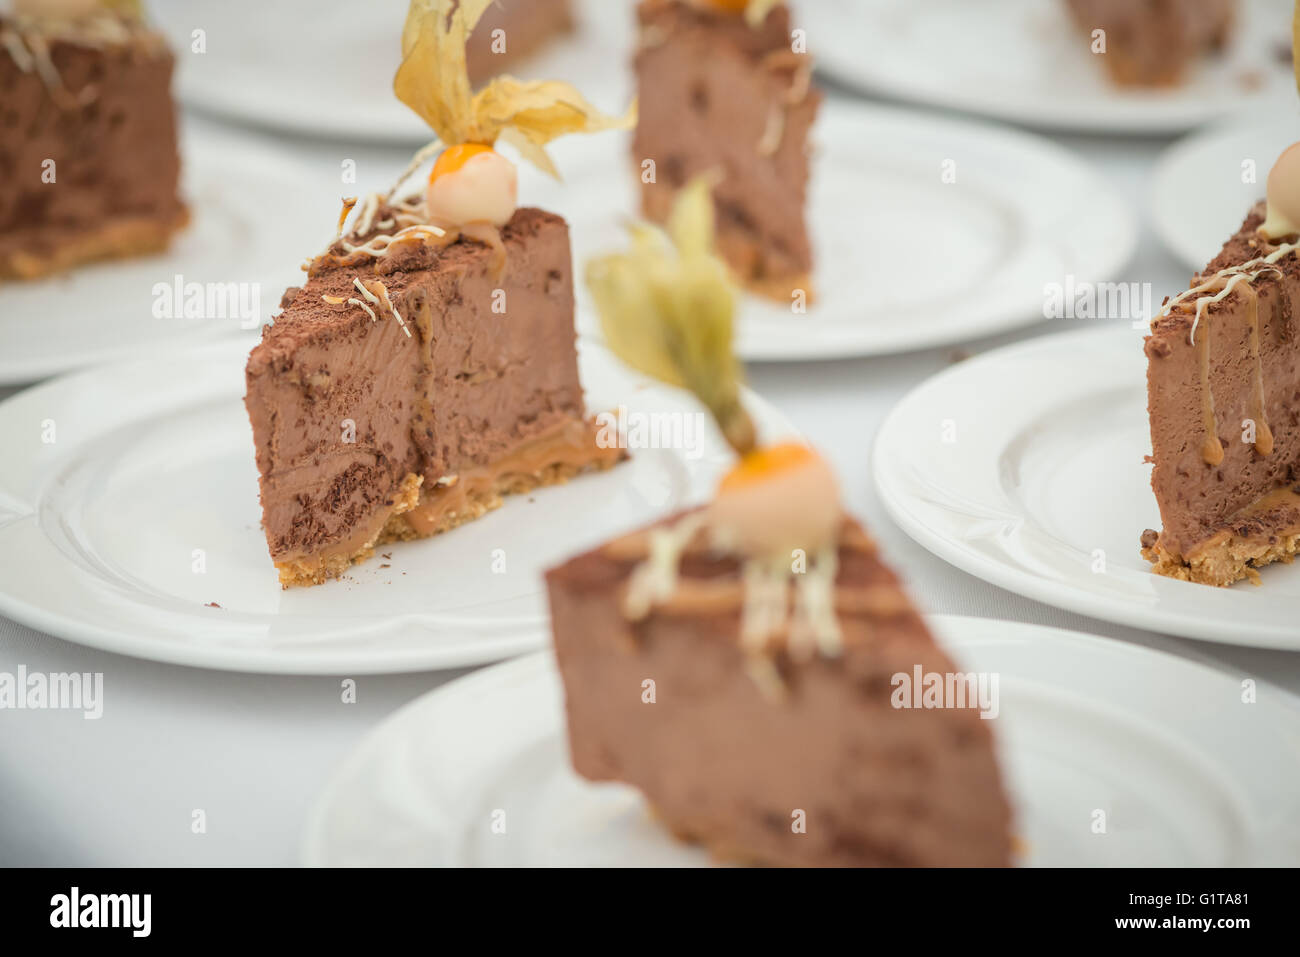 A collection of chef prepared chocolate desserts placed on a table, landscape format aspect ratio. - Stock Image